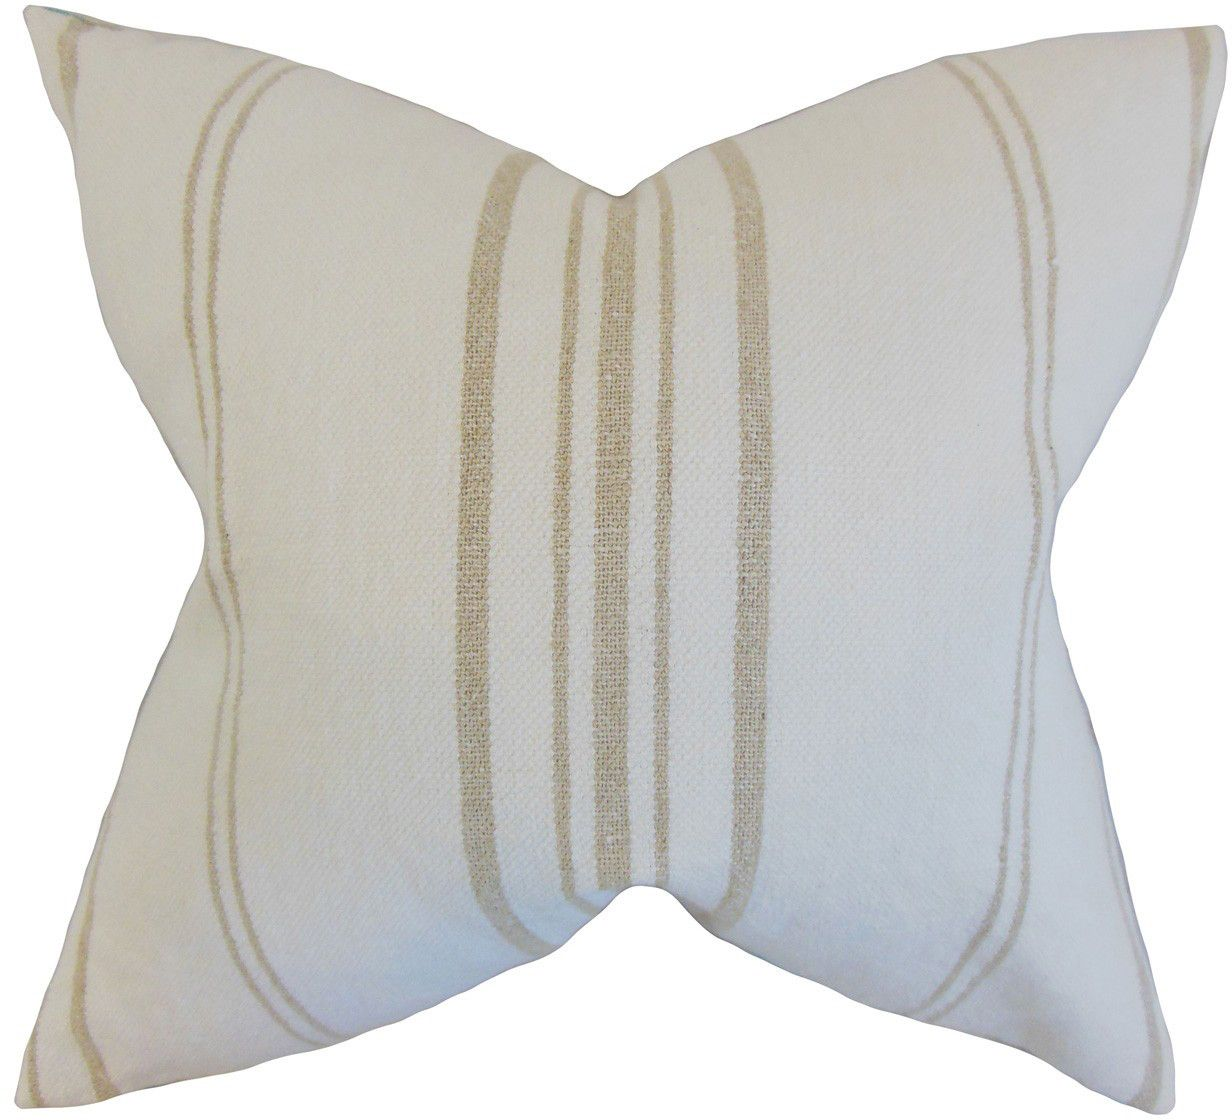 Farmhouse pillow from Joss and Main